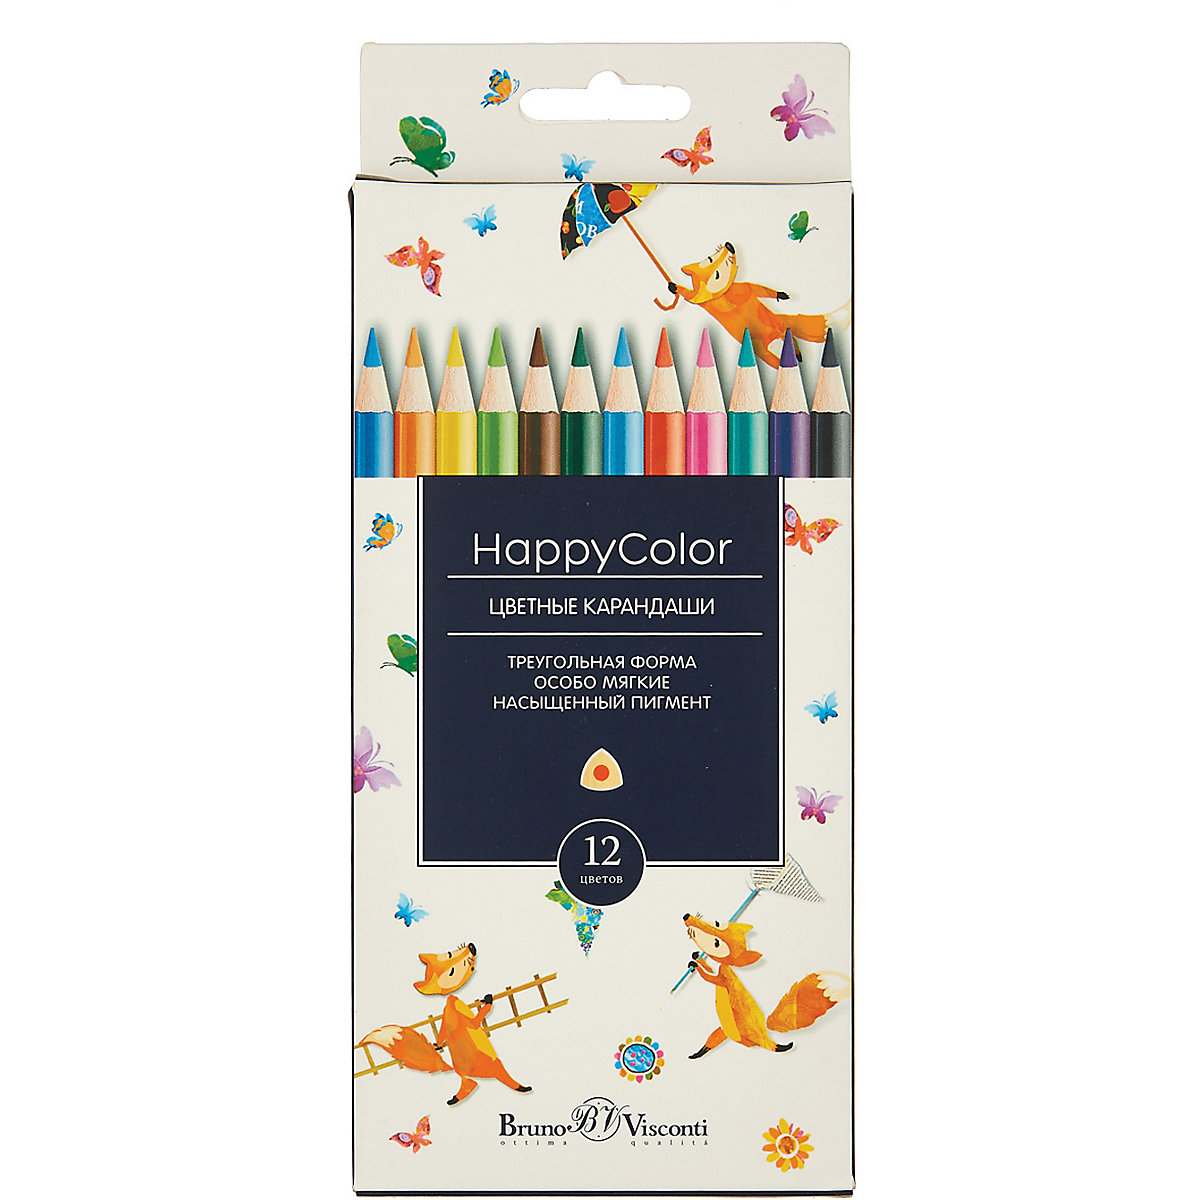 BRUNO VISCONTI Wooden Colored Pencils 11857937 colored pencil for boys and girls children sets MTpromo